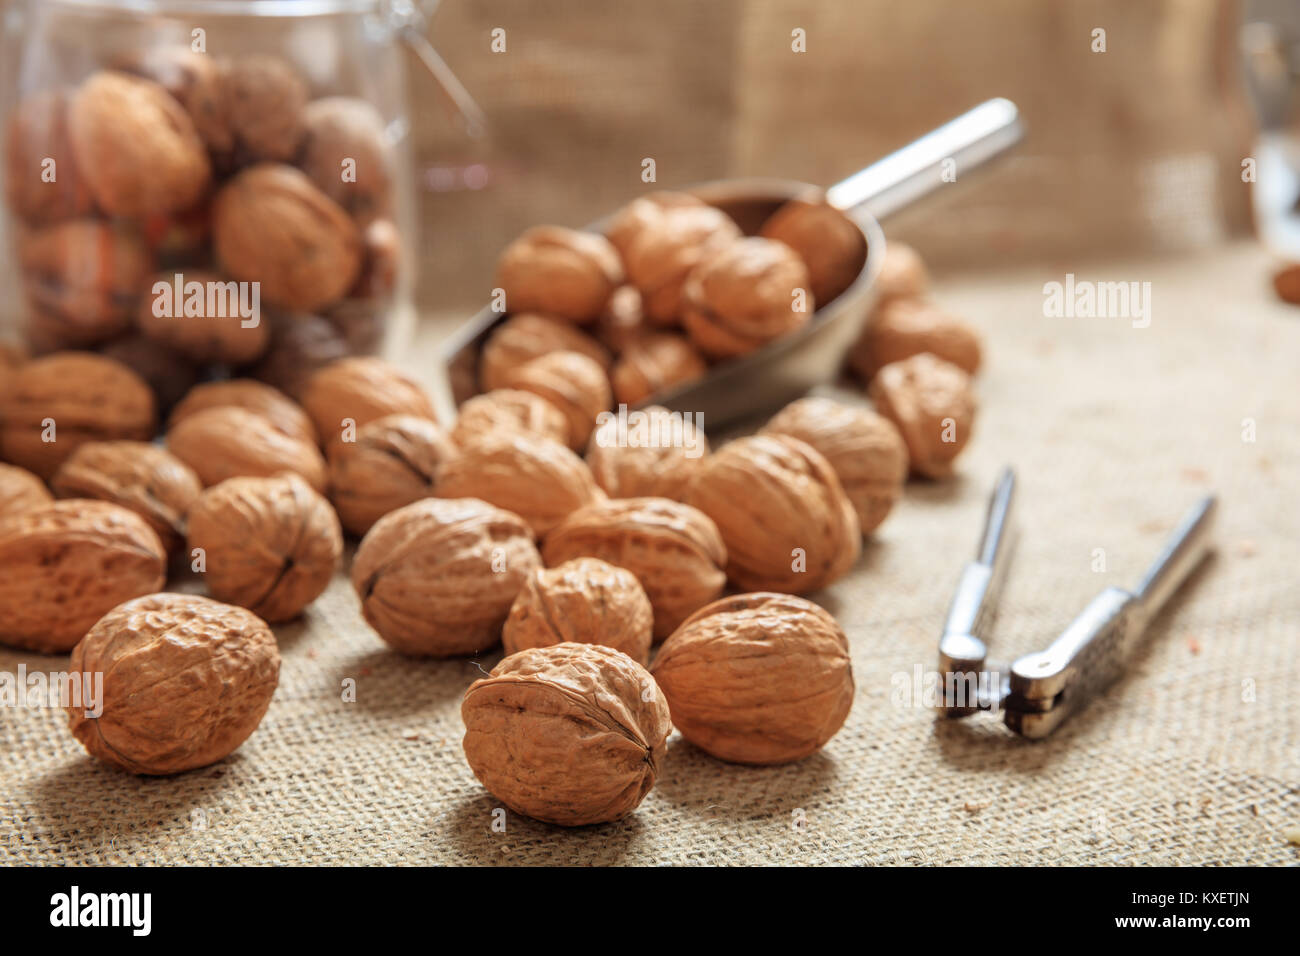 Walnuts, a scoop and an old nutcracker on a table - Stock Image